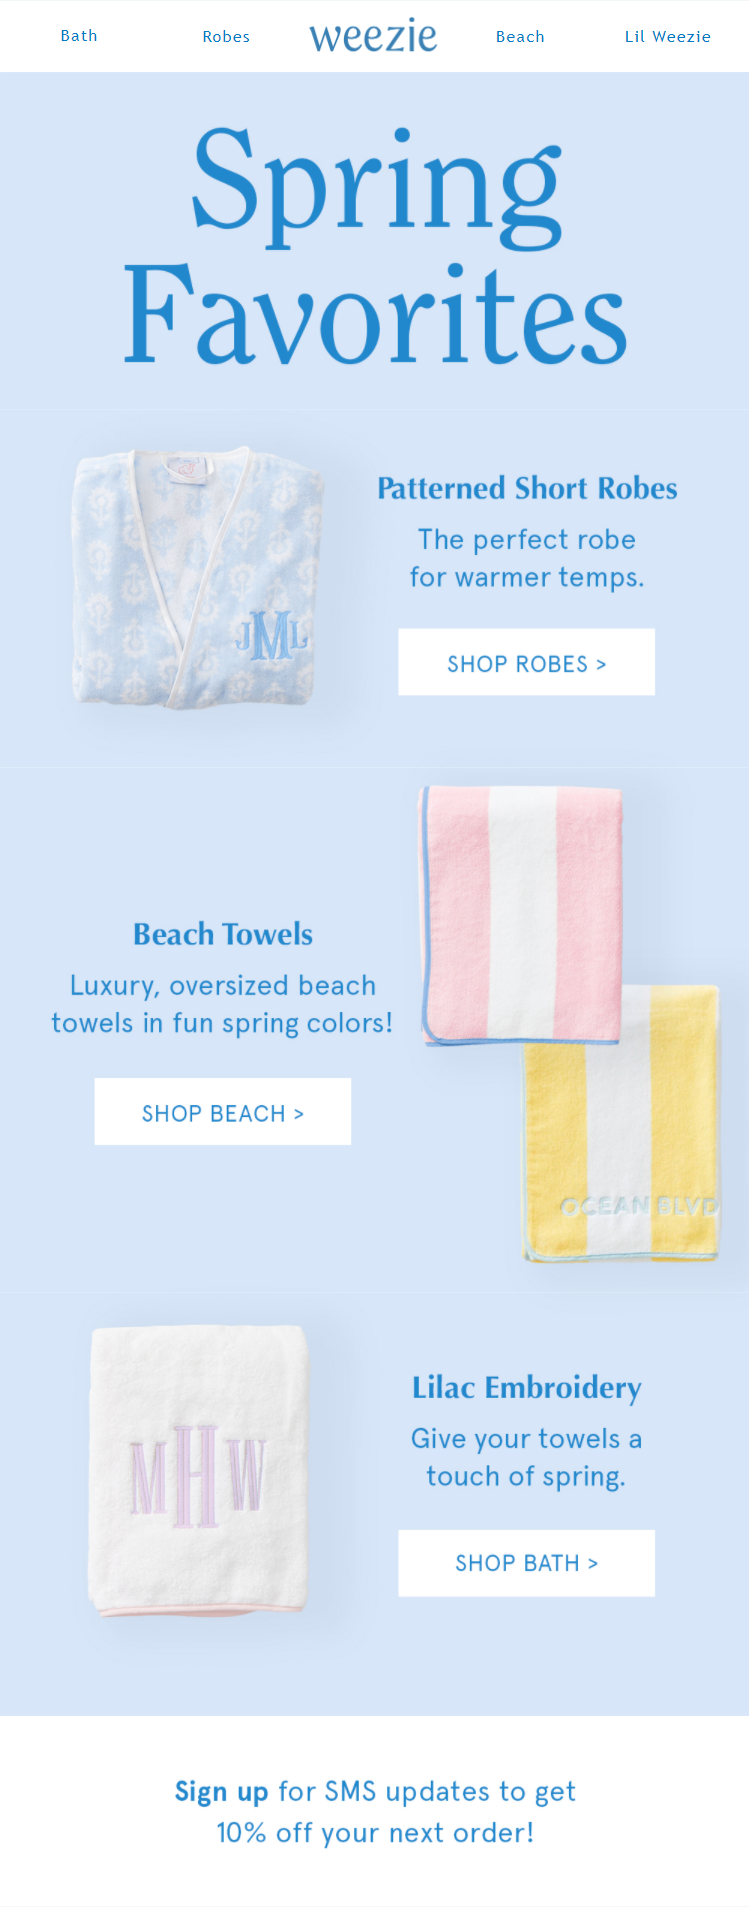 weezie-llc-spring-is-that-you